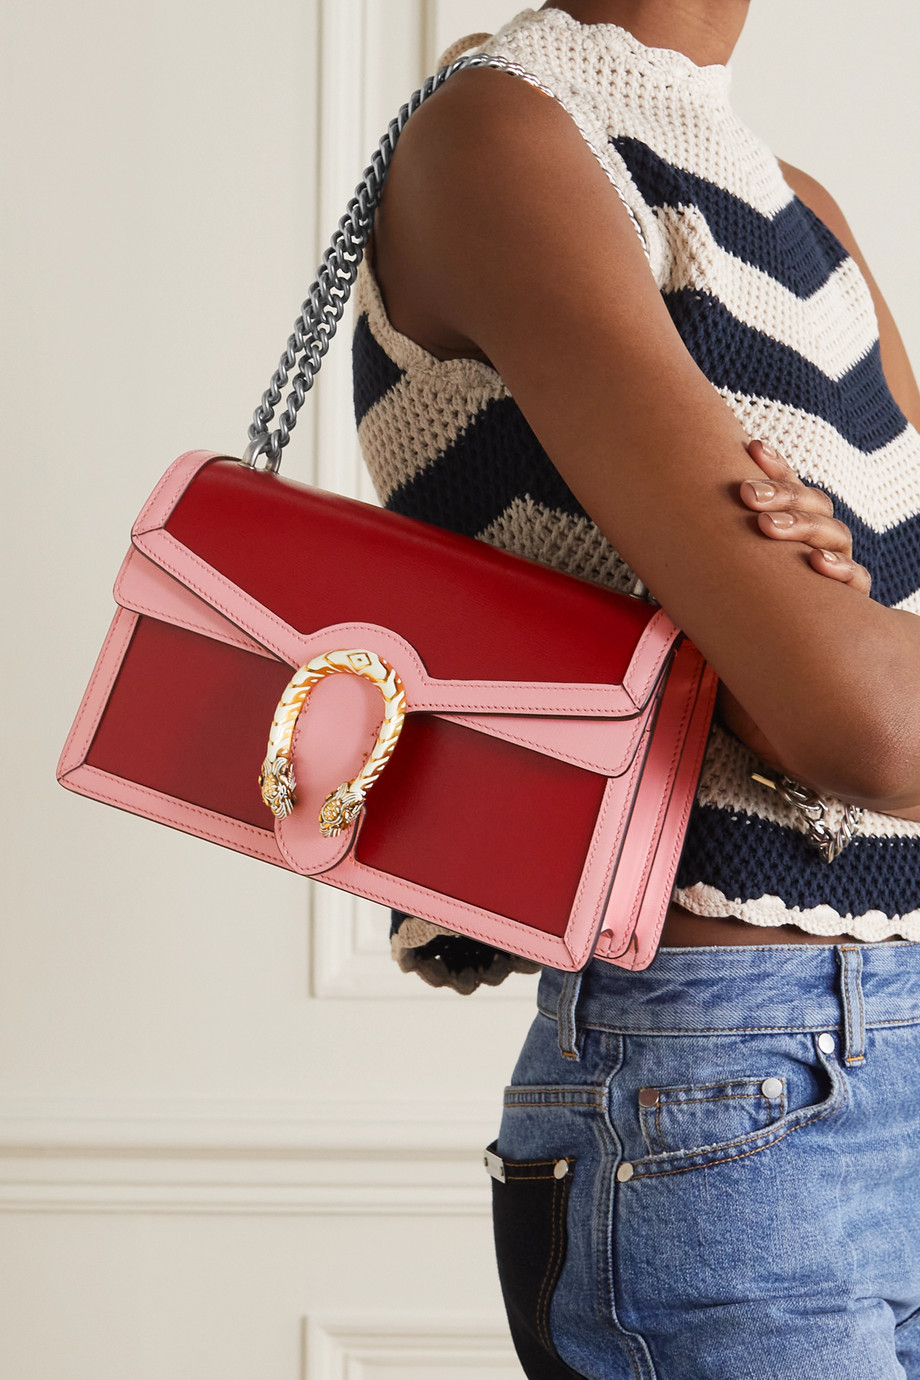 Gucci Dionysus small two-tone leather shoulder bag